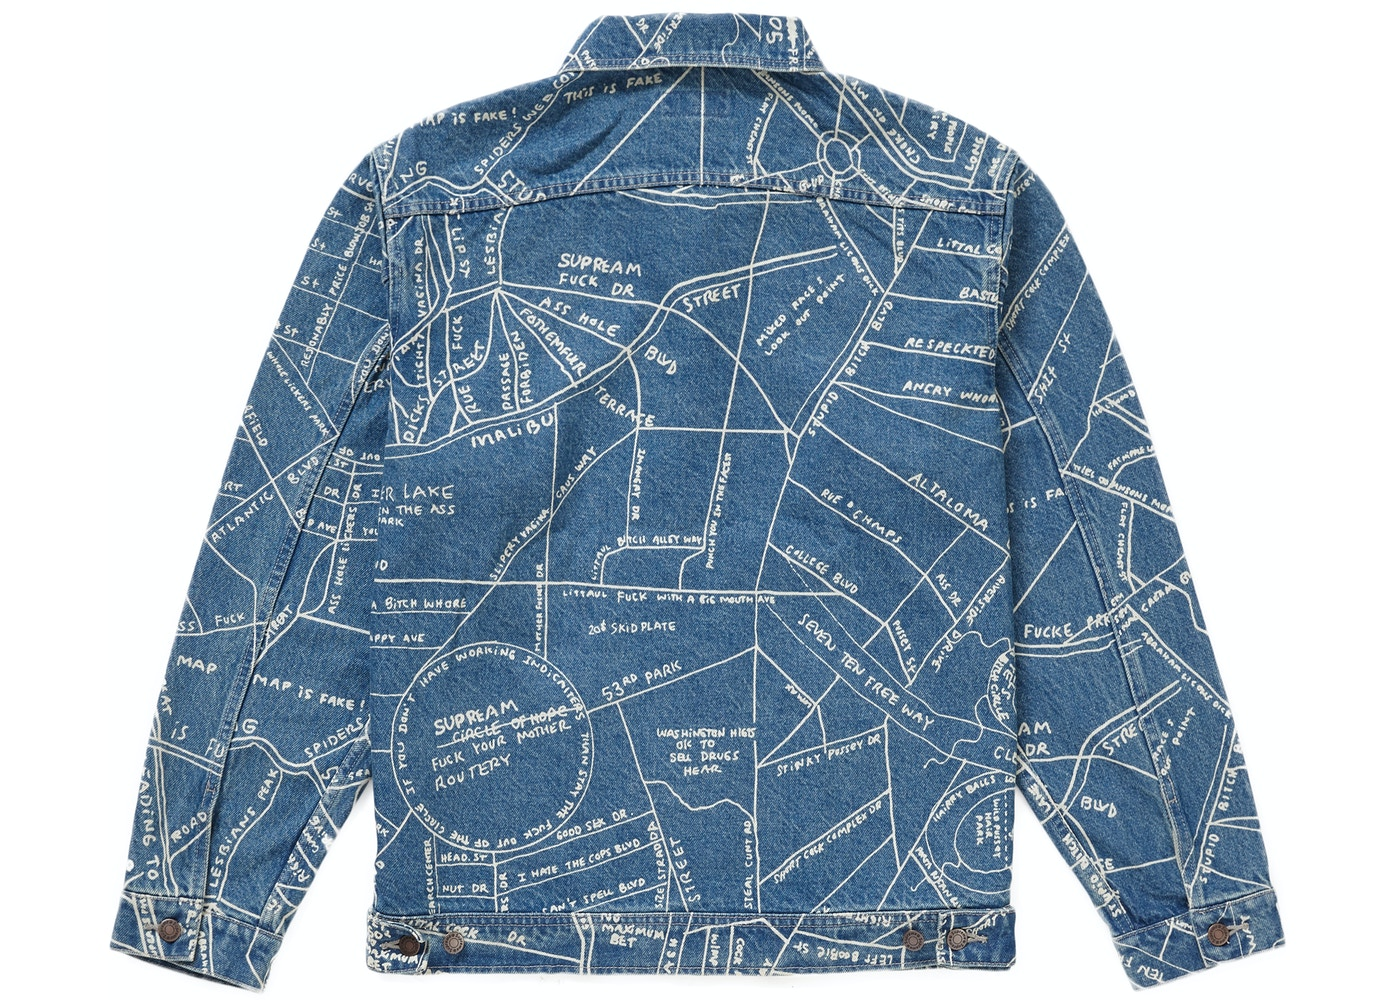 Supreme Gonz Map Work Jacket Washed Blue - SS19 on